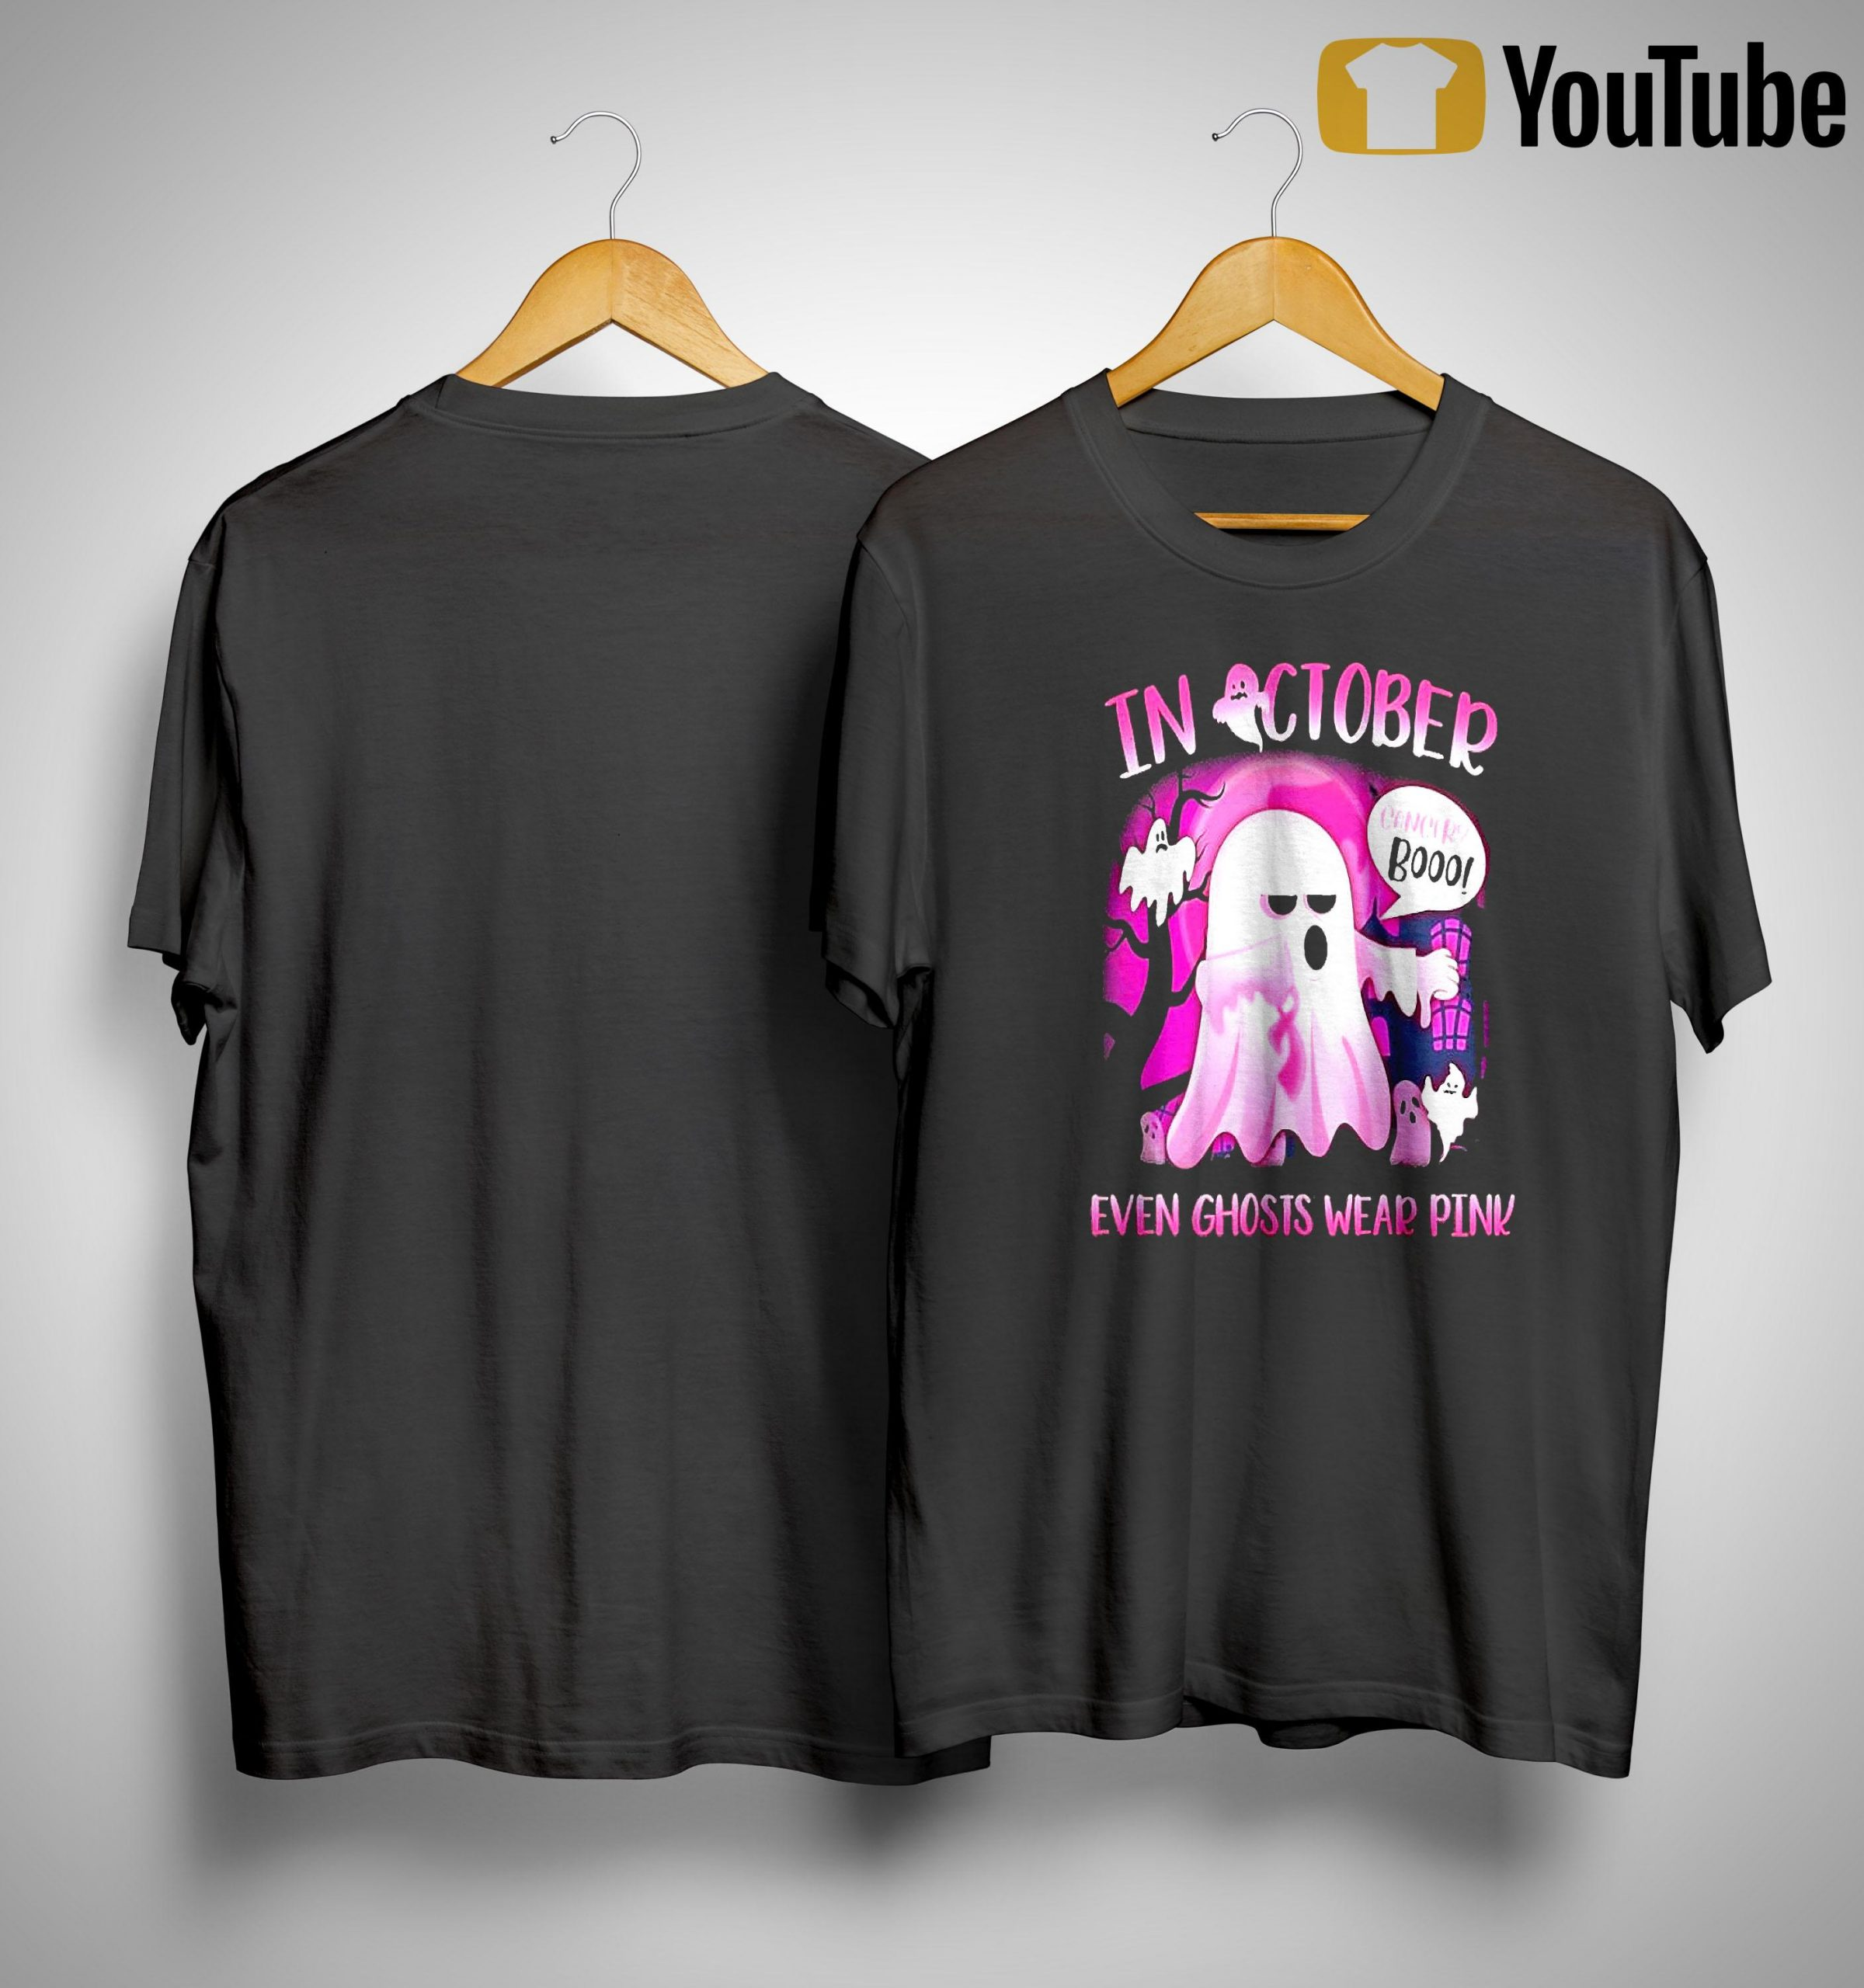 In October Cancer Booo Even Ghosts Wear Pink Shirt